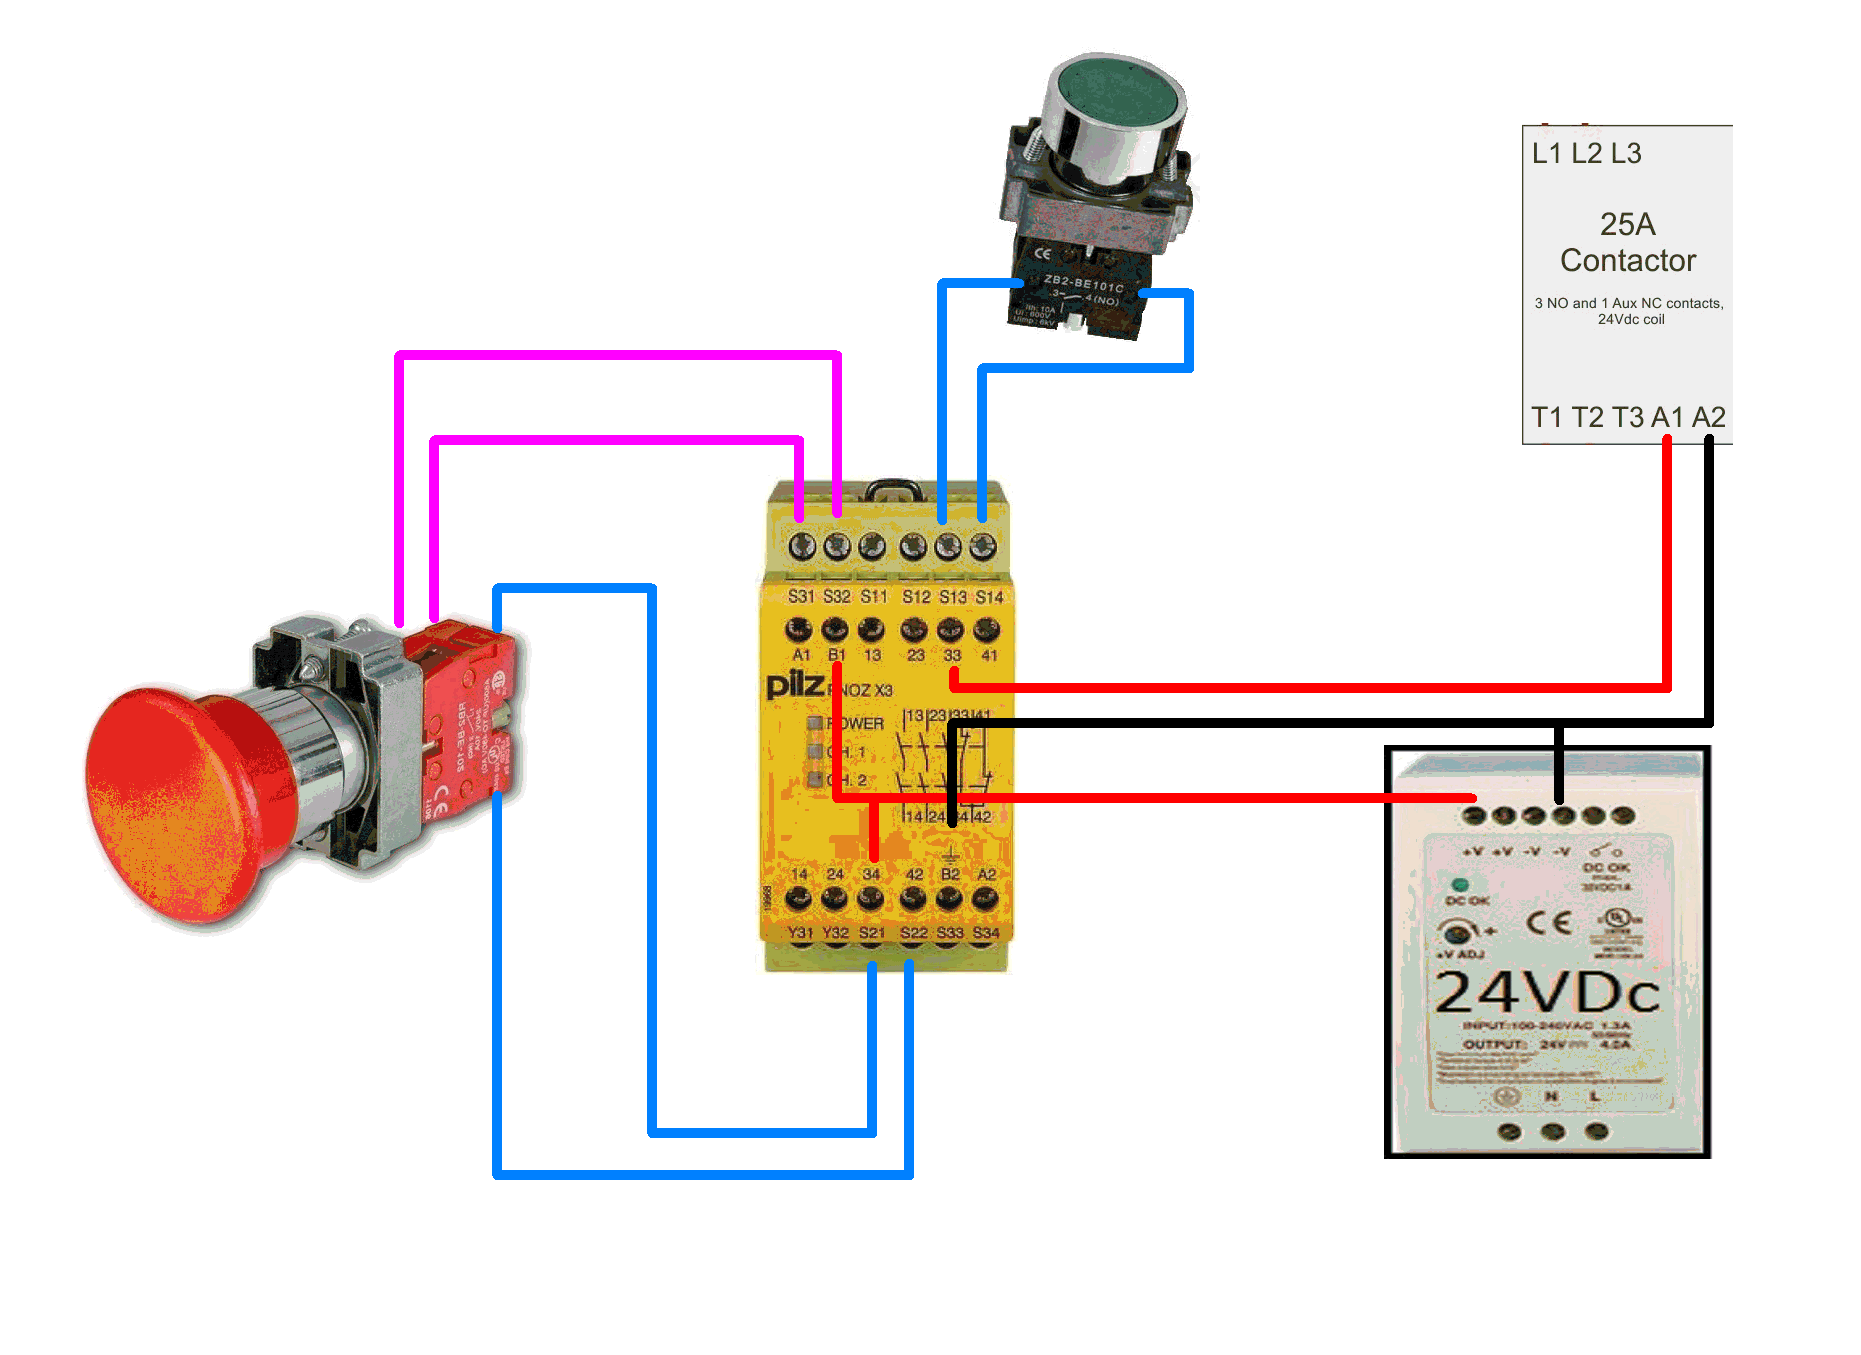 Build Log Comments Sought On New A Cnc Router For Rc Gliders Contactor Wiring Diagram Uk Like This Attachment 14964